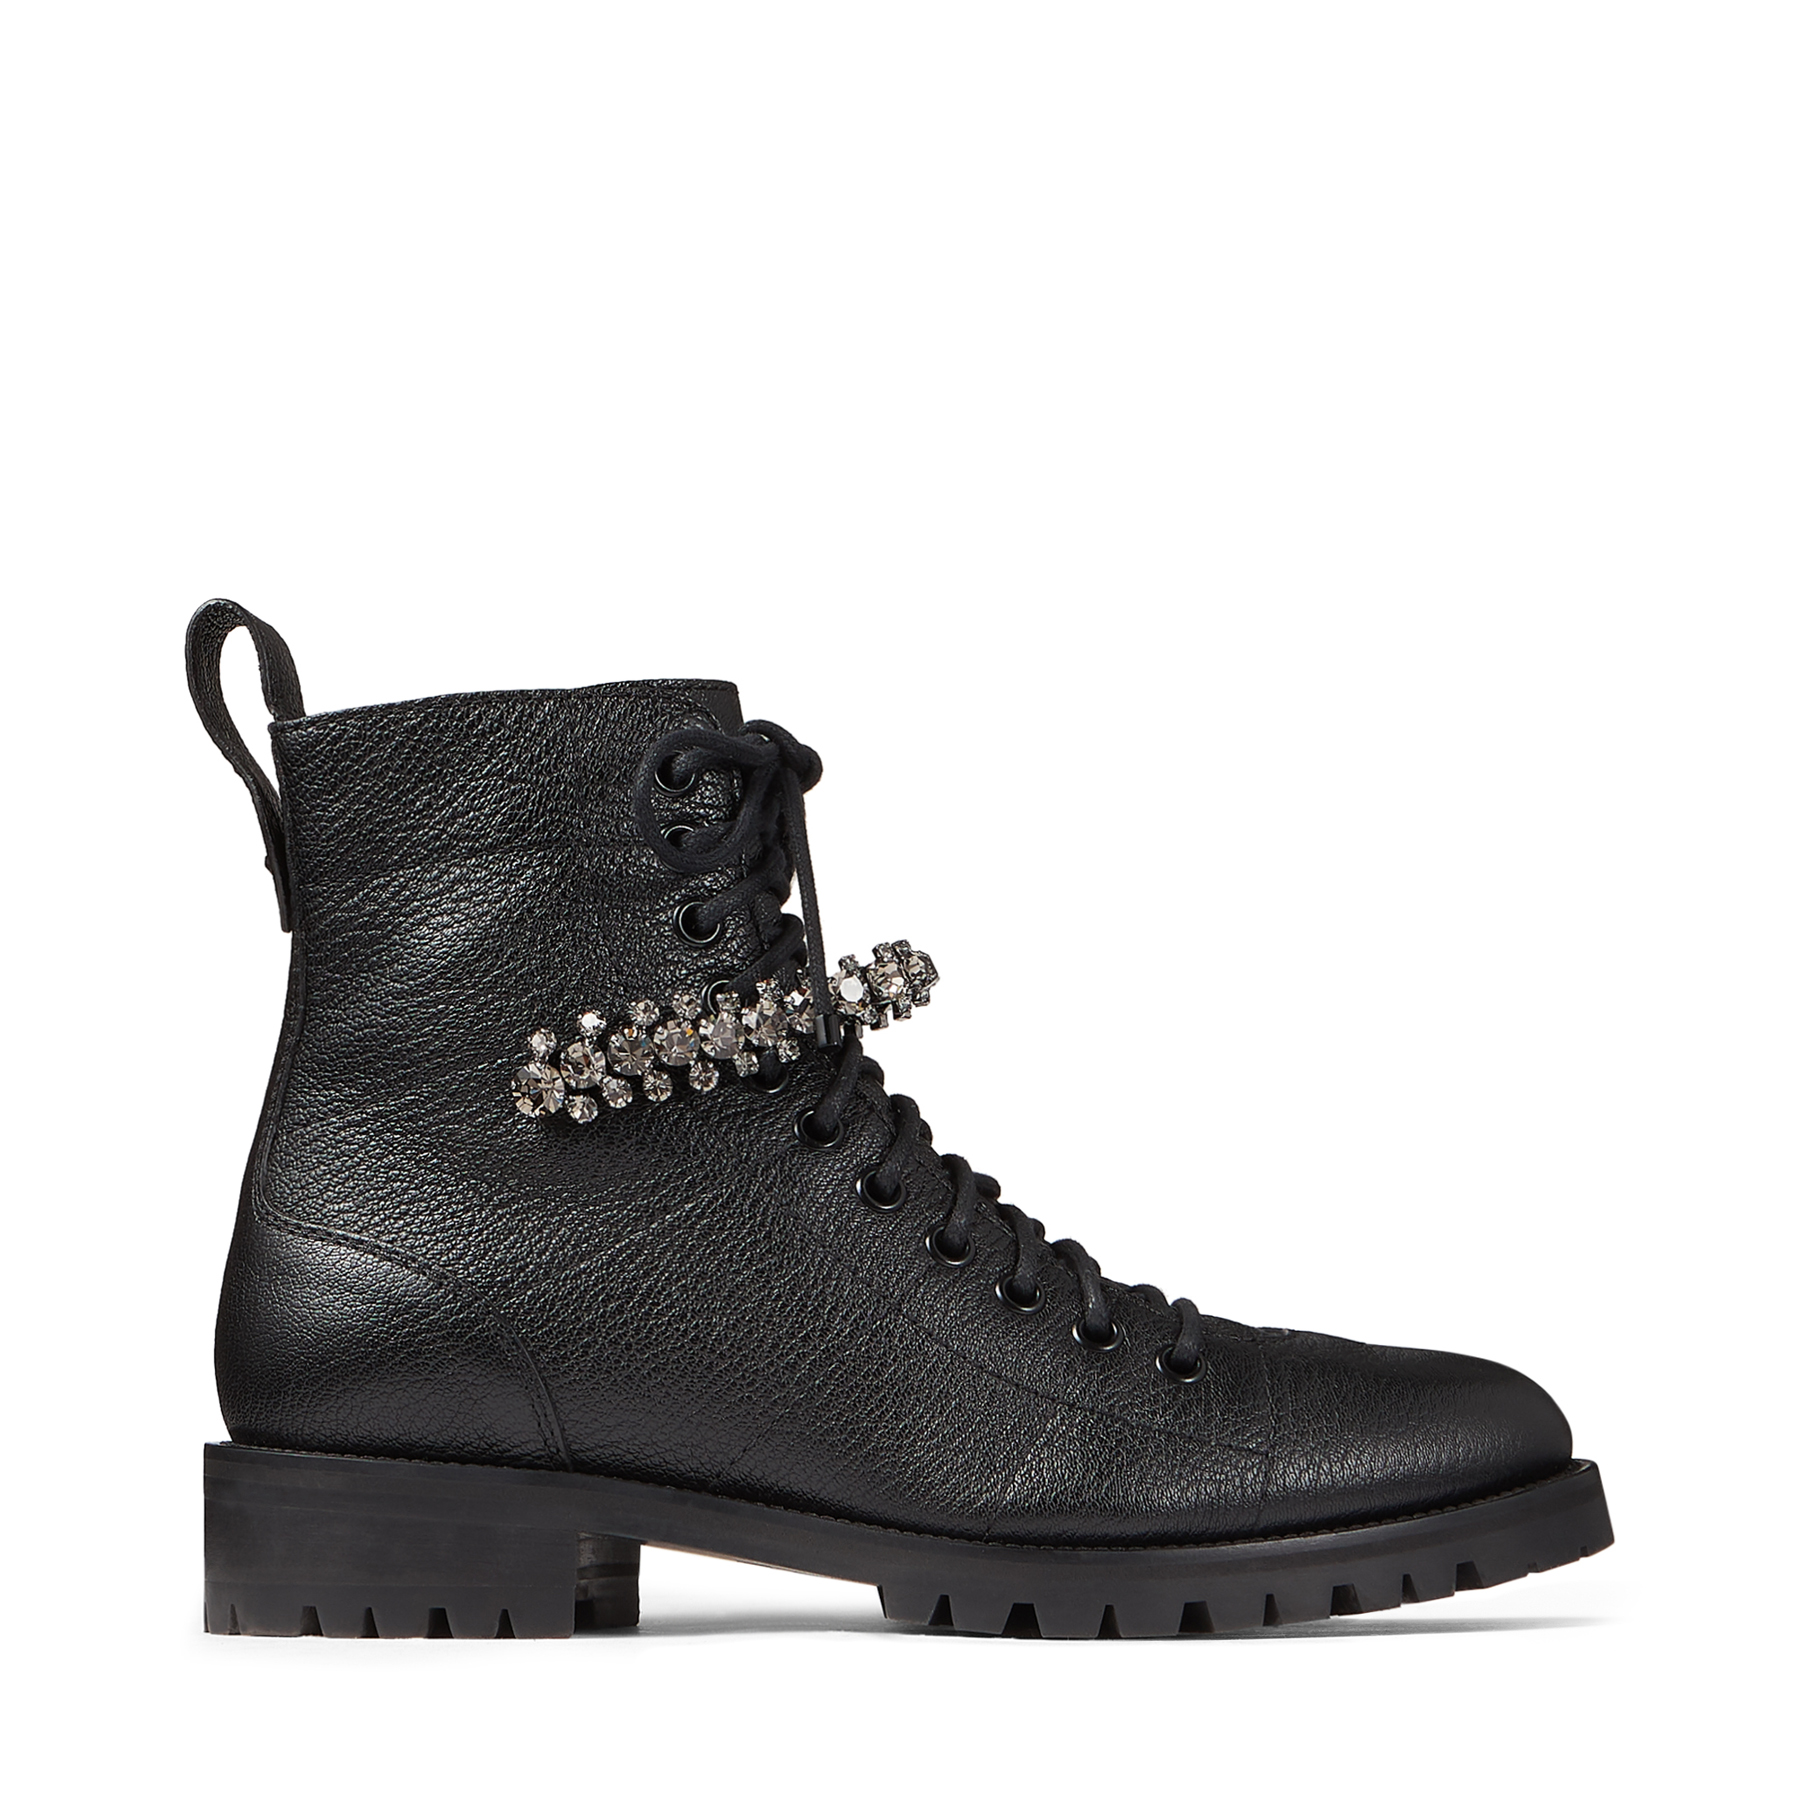 CRUZ FLAT Black Grainy Leather Combat Boots with Crystal Detailing